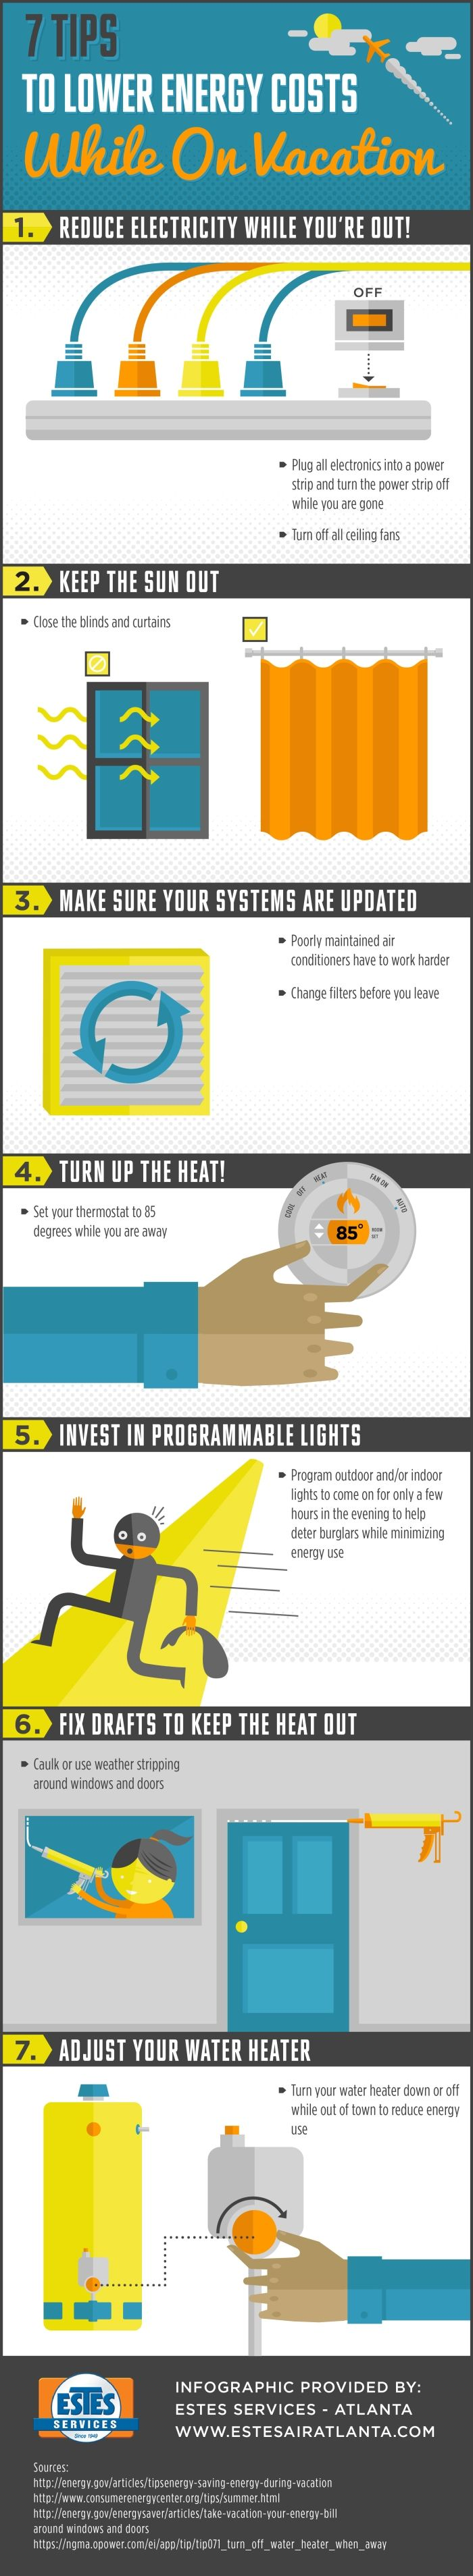 7 Tips To Lower Energy Costs While On Vacation Infographic